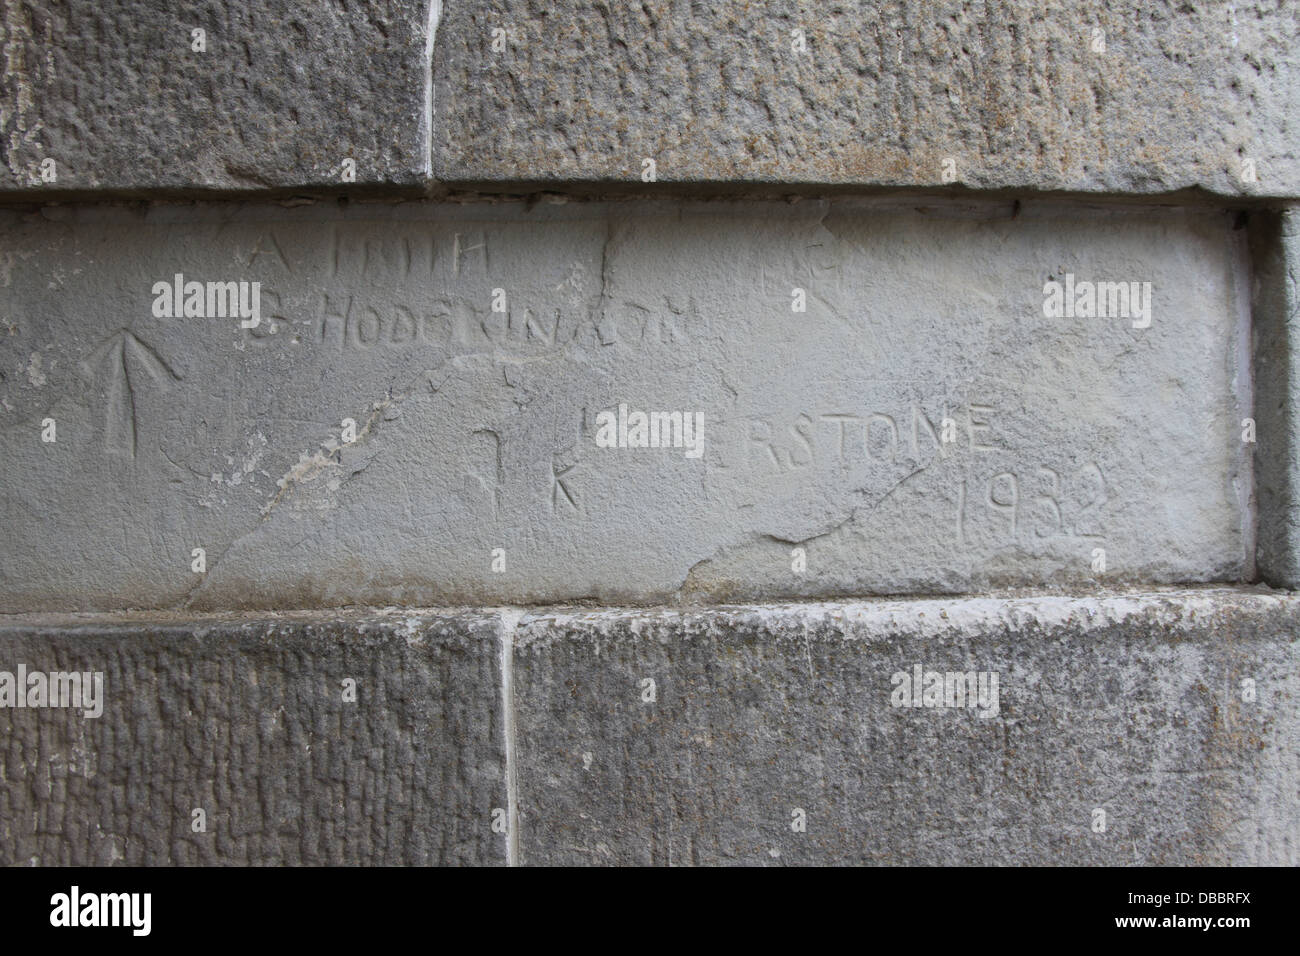 Old Convict Inscription at Port Arthur - Stock Image